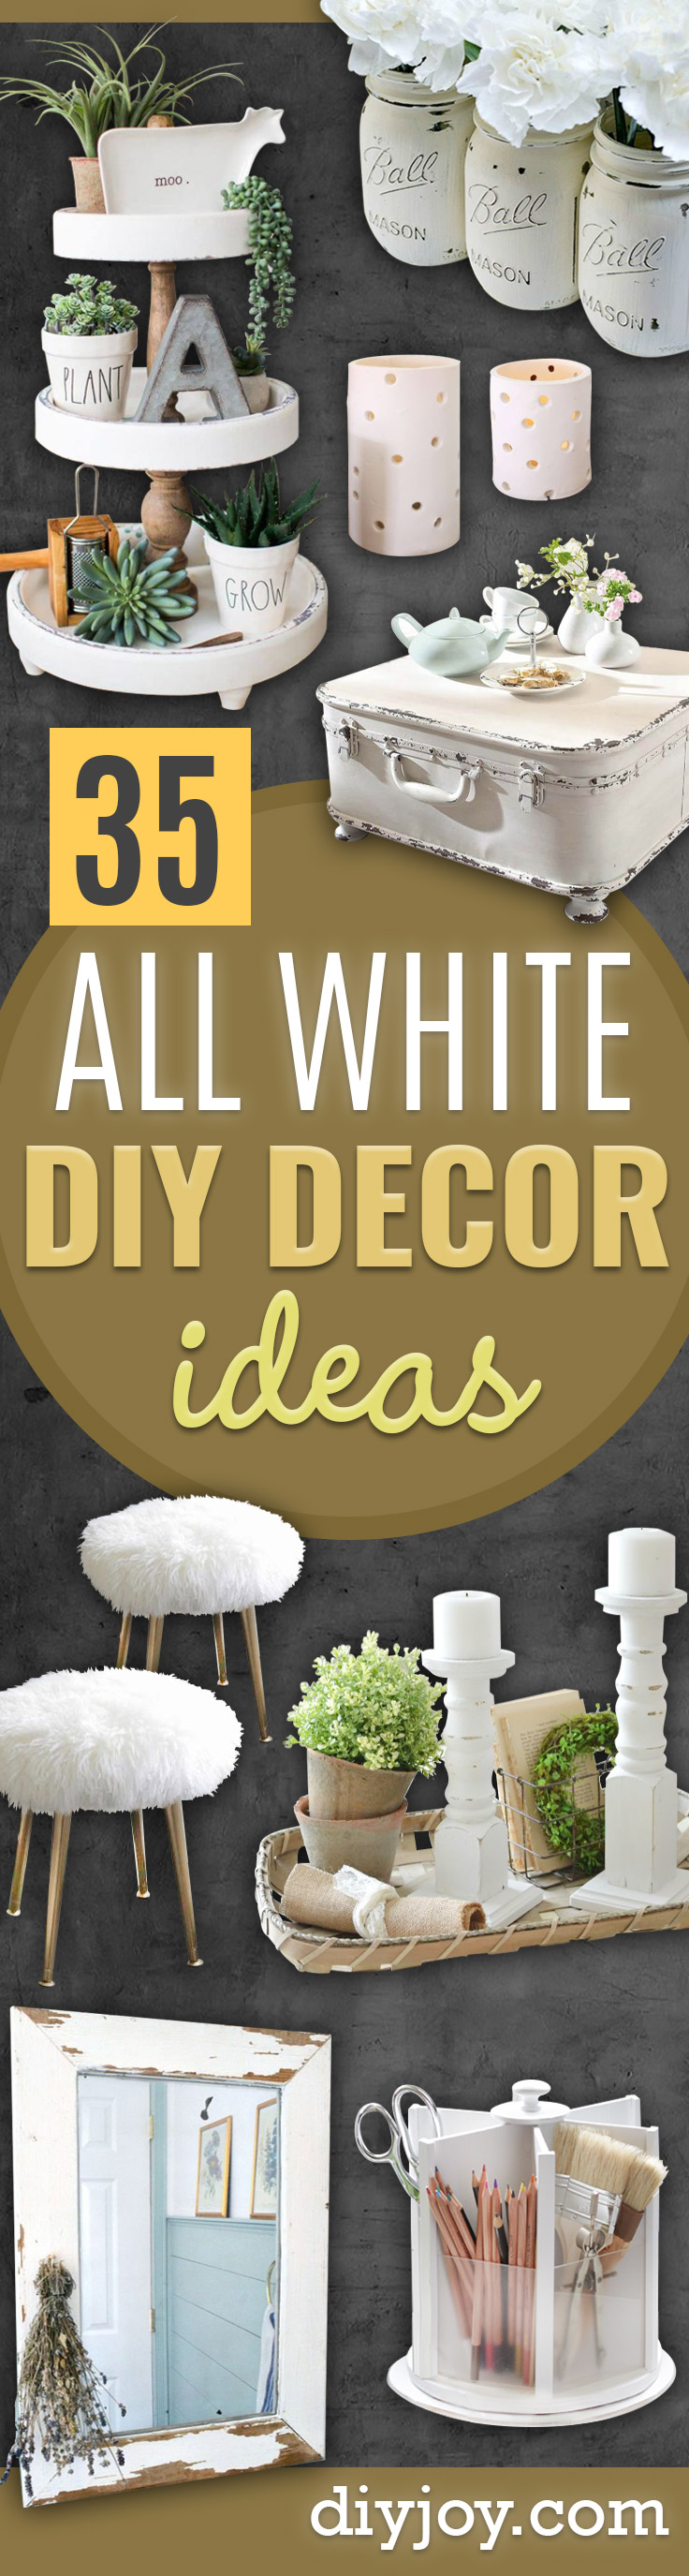 All White DIY Room Decor - Creative Home Decor Ideas for the Bedroom and Living Room, Kitchen and Bathroom - Do It Yourself Crafts and White Wall Art, Bedding, Curtains, Lamps, Lighting, Rugs and Accessories - Easy Room Decoration Ideas for Modern, Vintage Farmhouse and Minimalist Furnishings - Furniture, Wall Art and DIY Projects With Step by Step Tutorials and Instructions http://diyjoy.com/all-white-decor-ideas